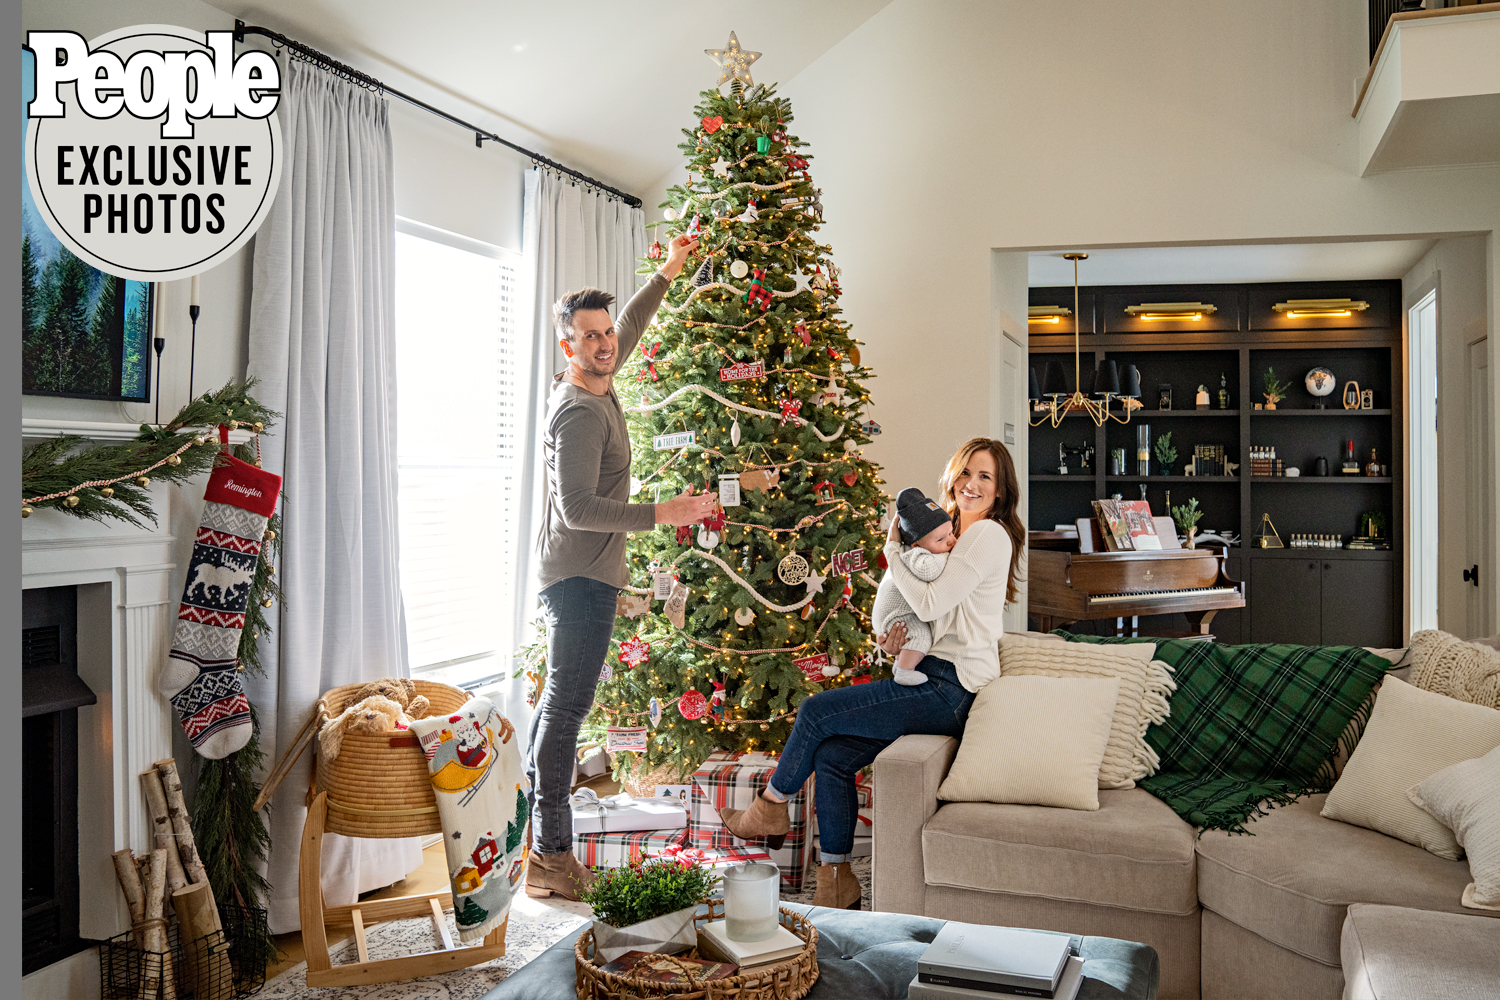 Russell Dickerson , wife Kailey and baby at home in Brentwood, TN